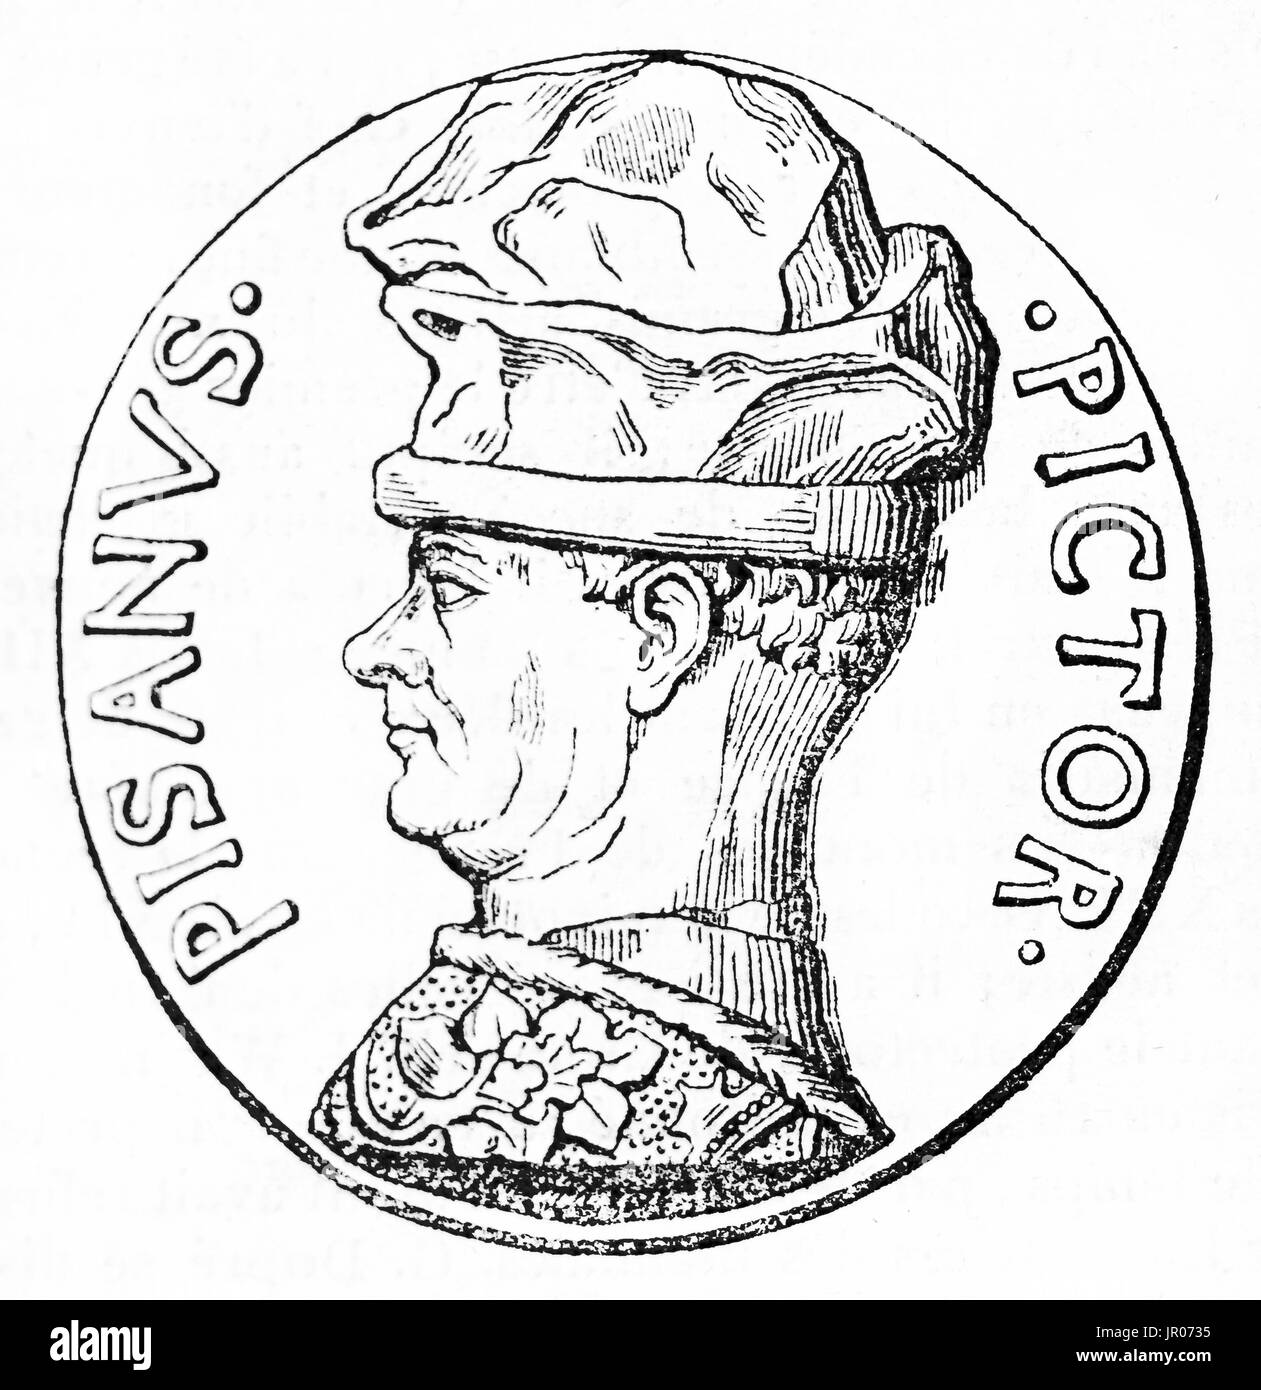 Old reproduction of a medallion depicting Pisanello (c. 1395 – c. 1455) early Renaissance Italian painter and medalist. After medallion created by Mar - Stock Image